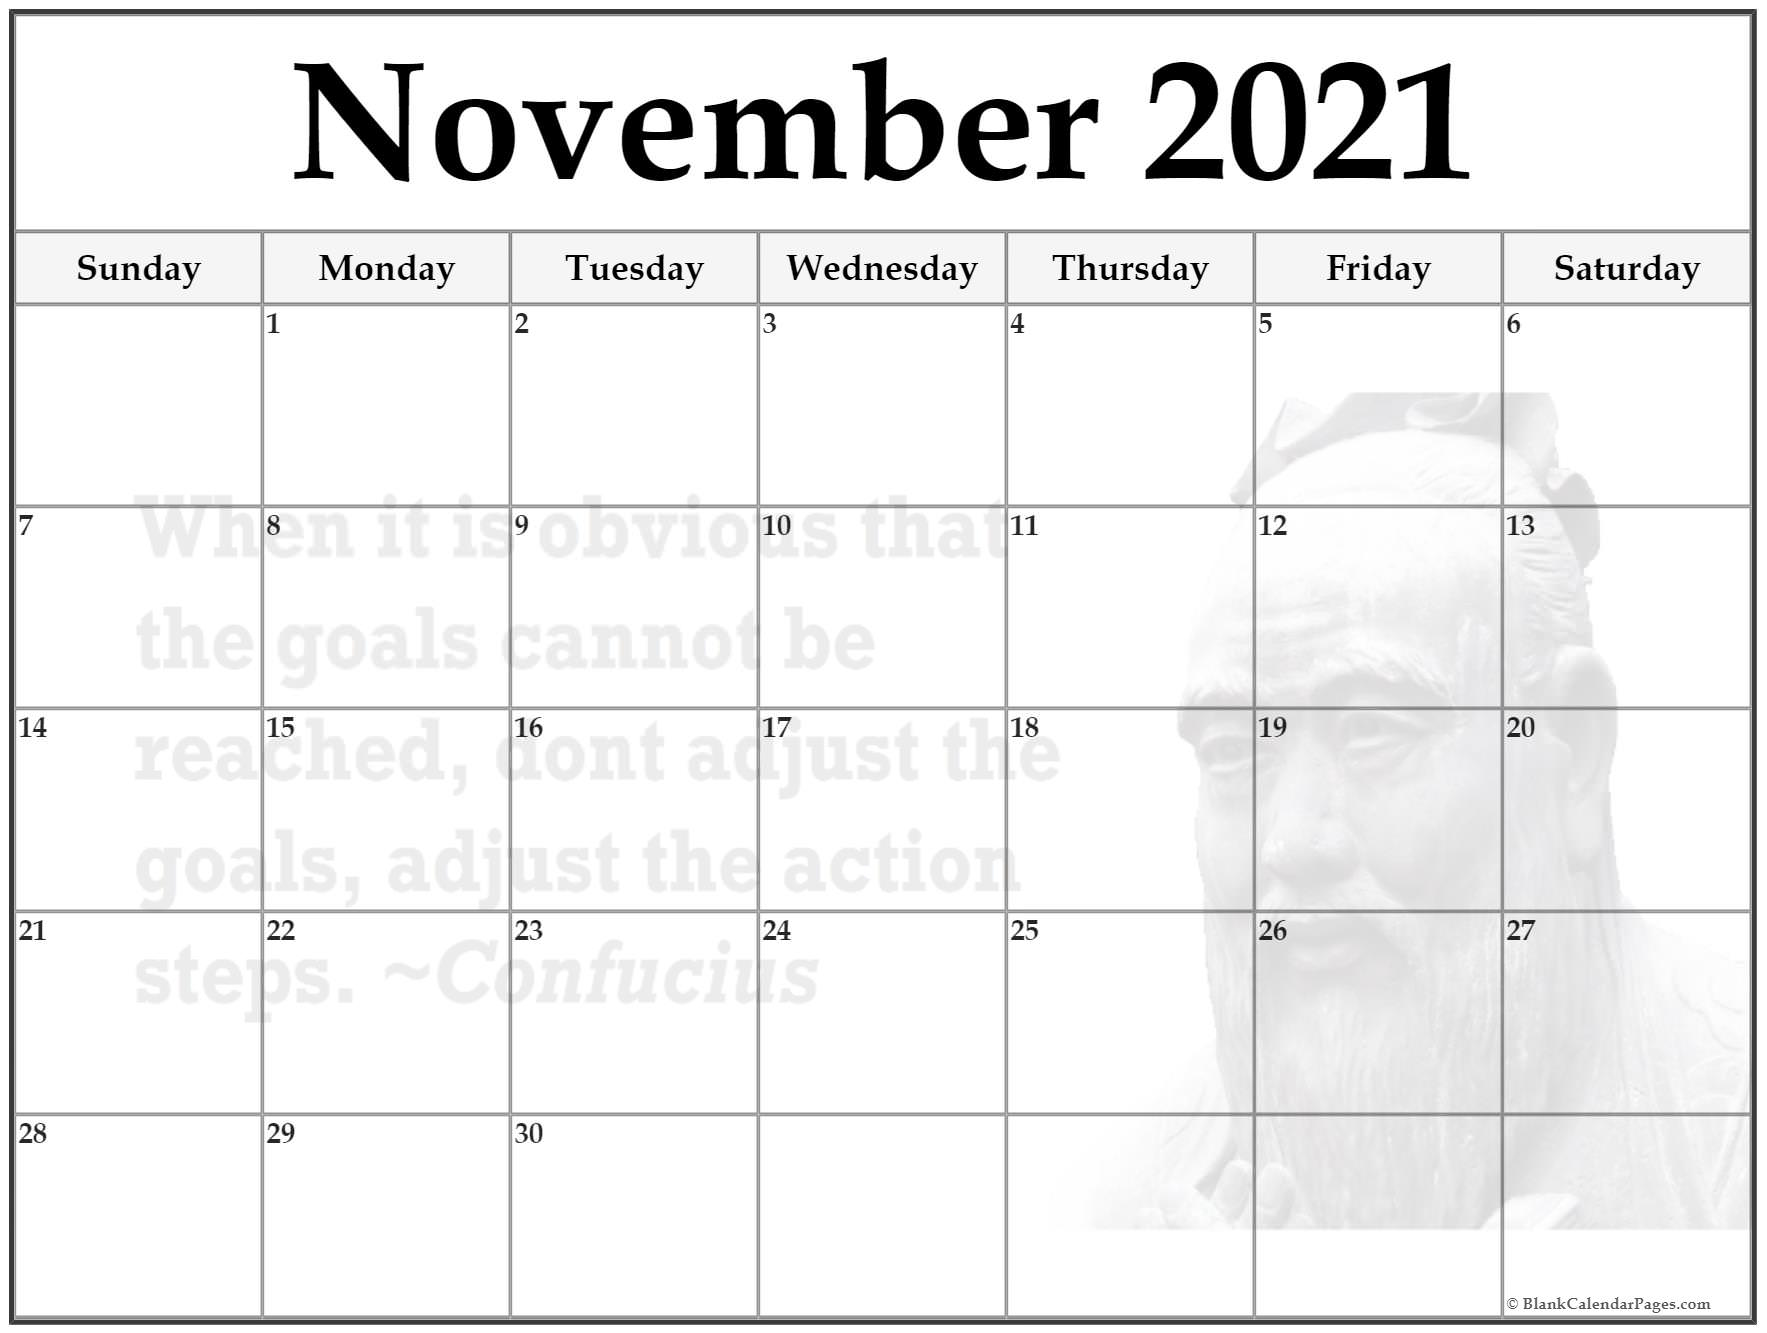 November 2021 confucius calendar. When it is obvious that the goals cannot be reached, don't adjust the goals, adjust the action steps ~Confucius